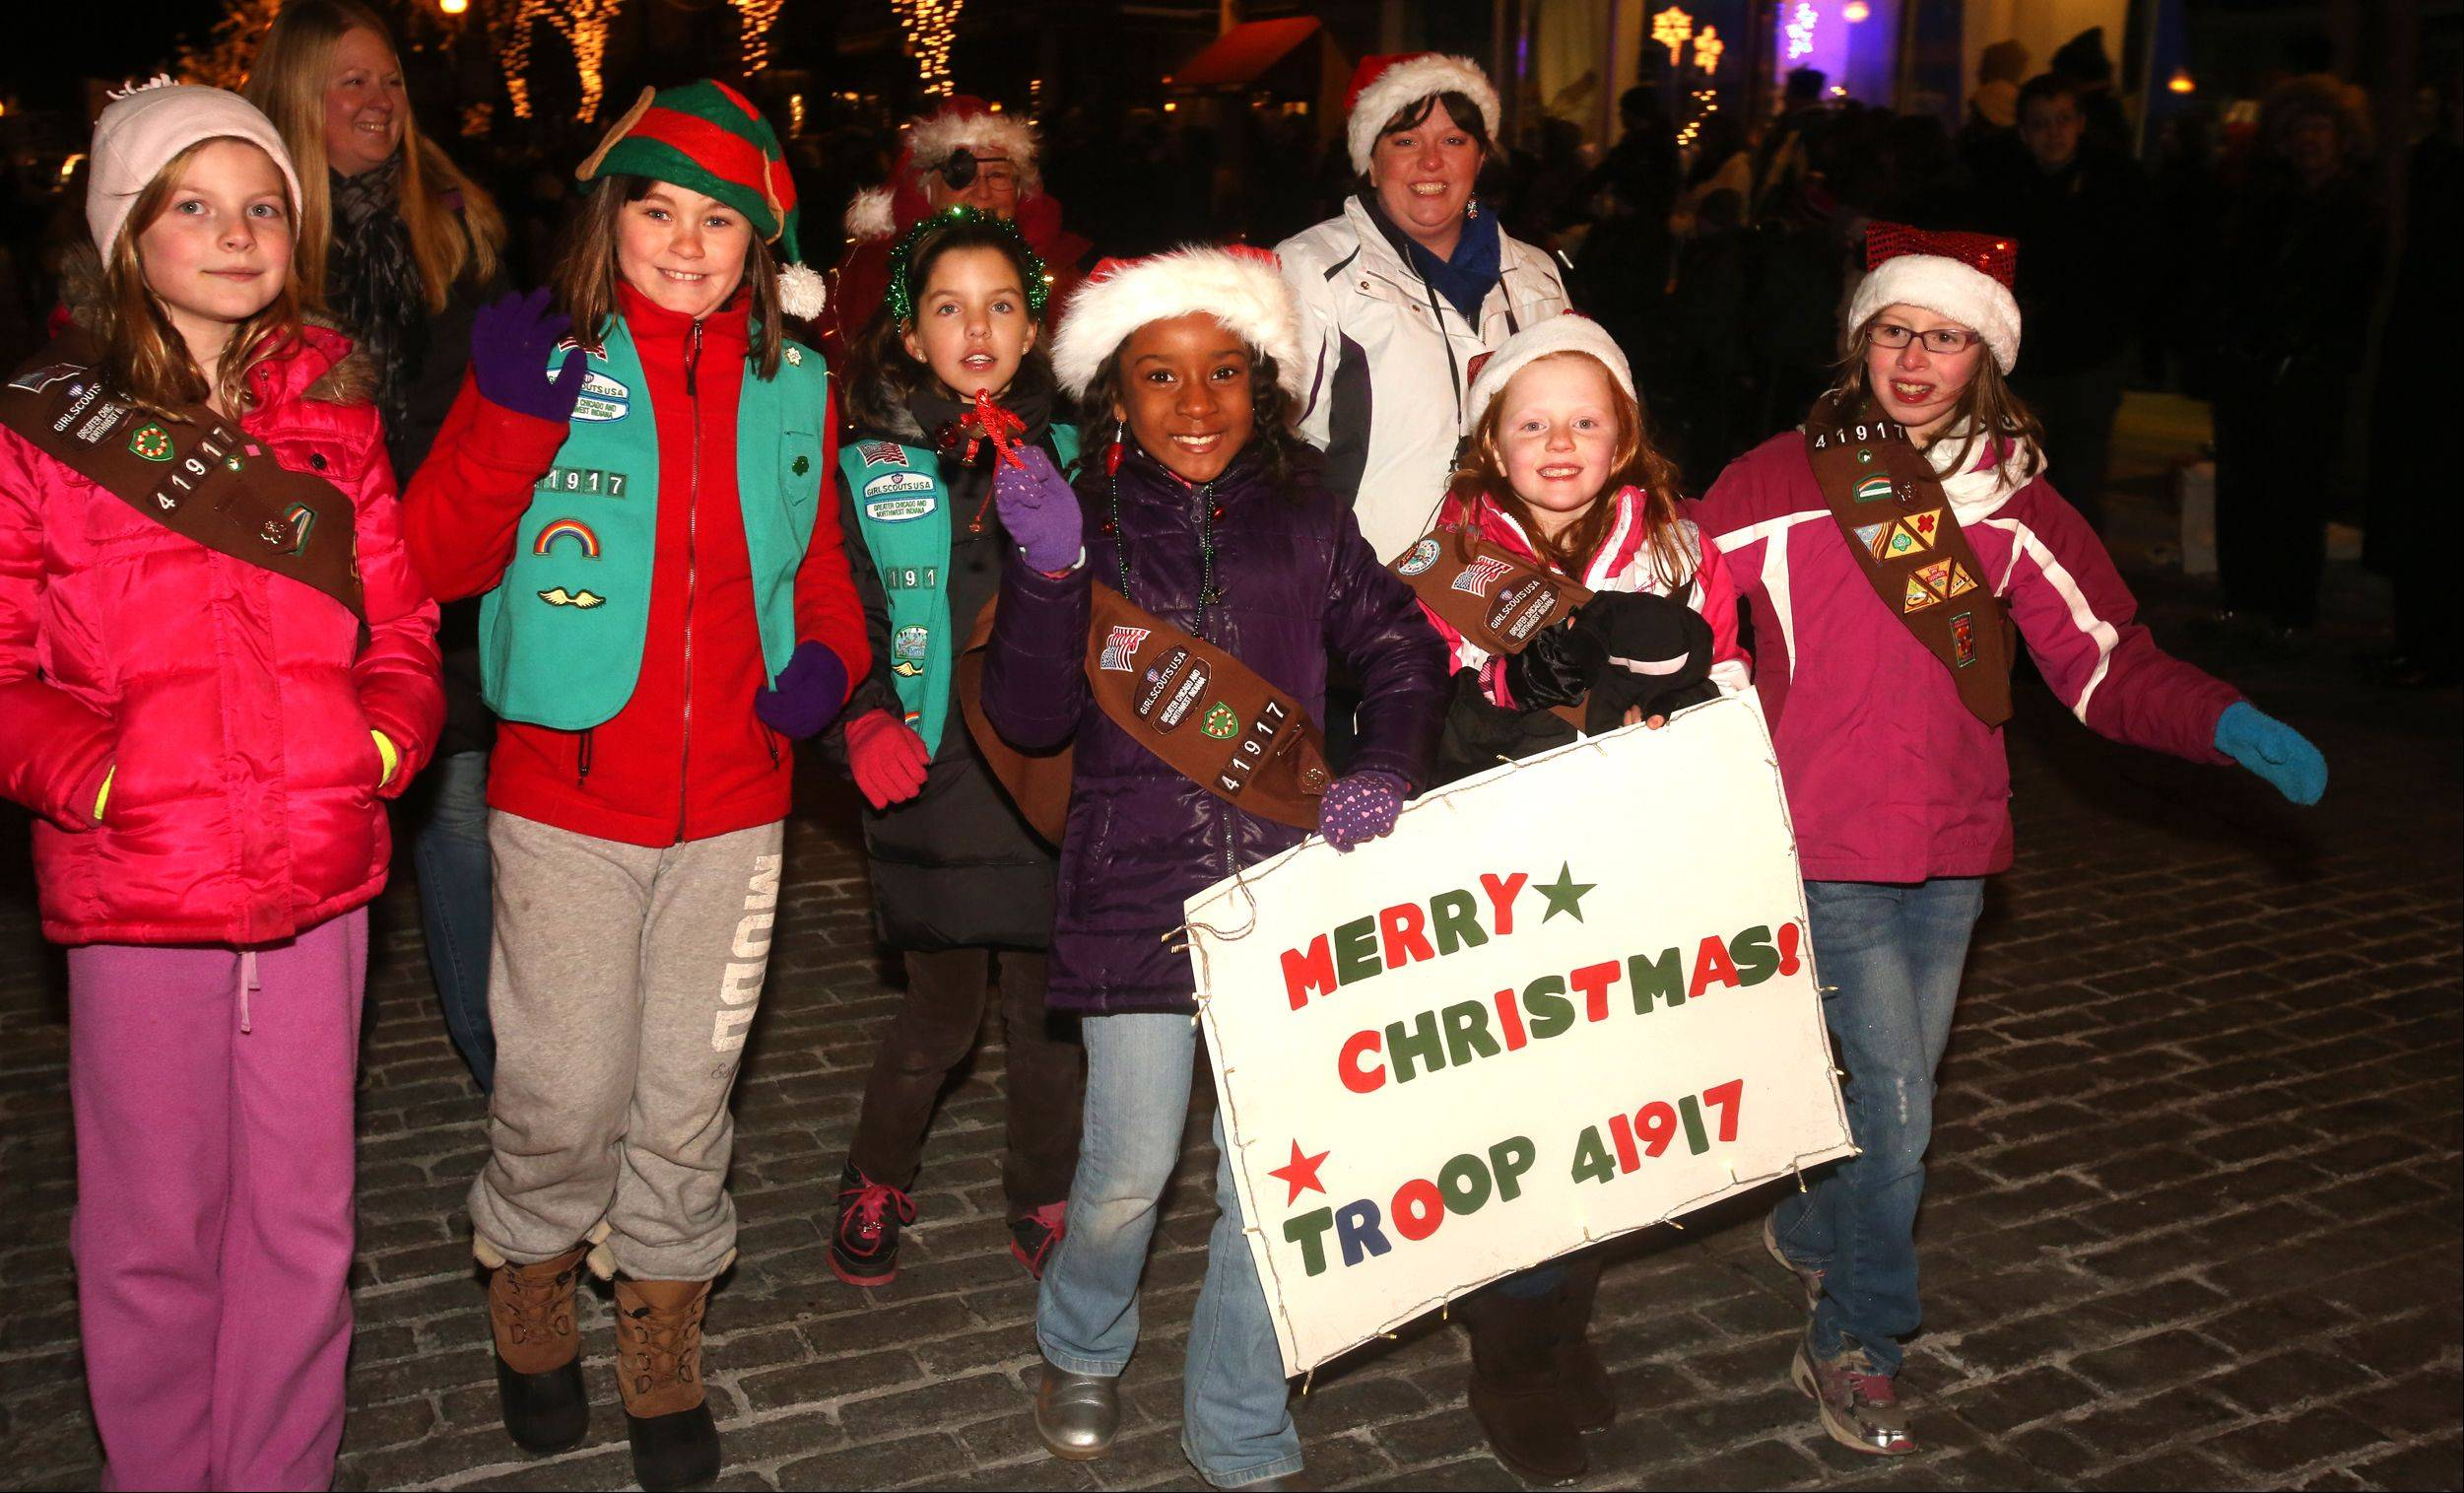 Daniel White/dwhite@dailyherald.comMembers of Girl Scout Troop 41917 of Hawthorne Elementary School march in the Wheaton Lighted Holiday Parade.